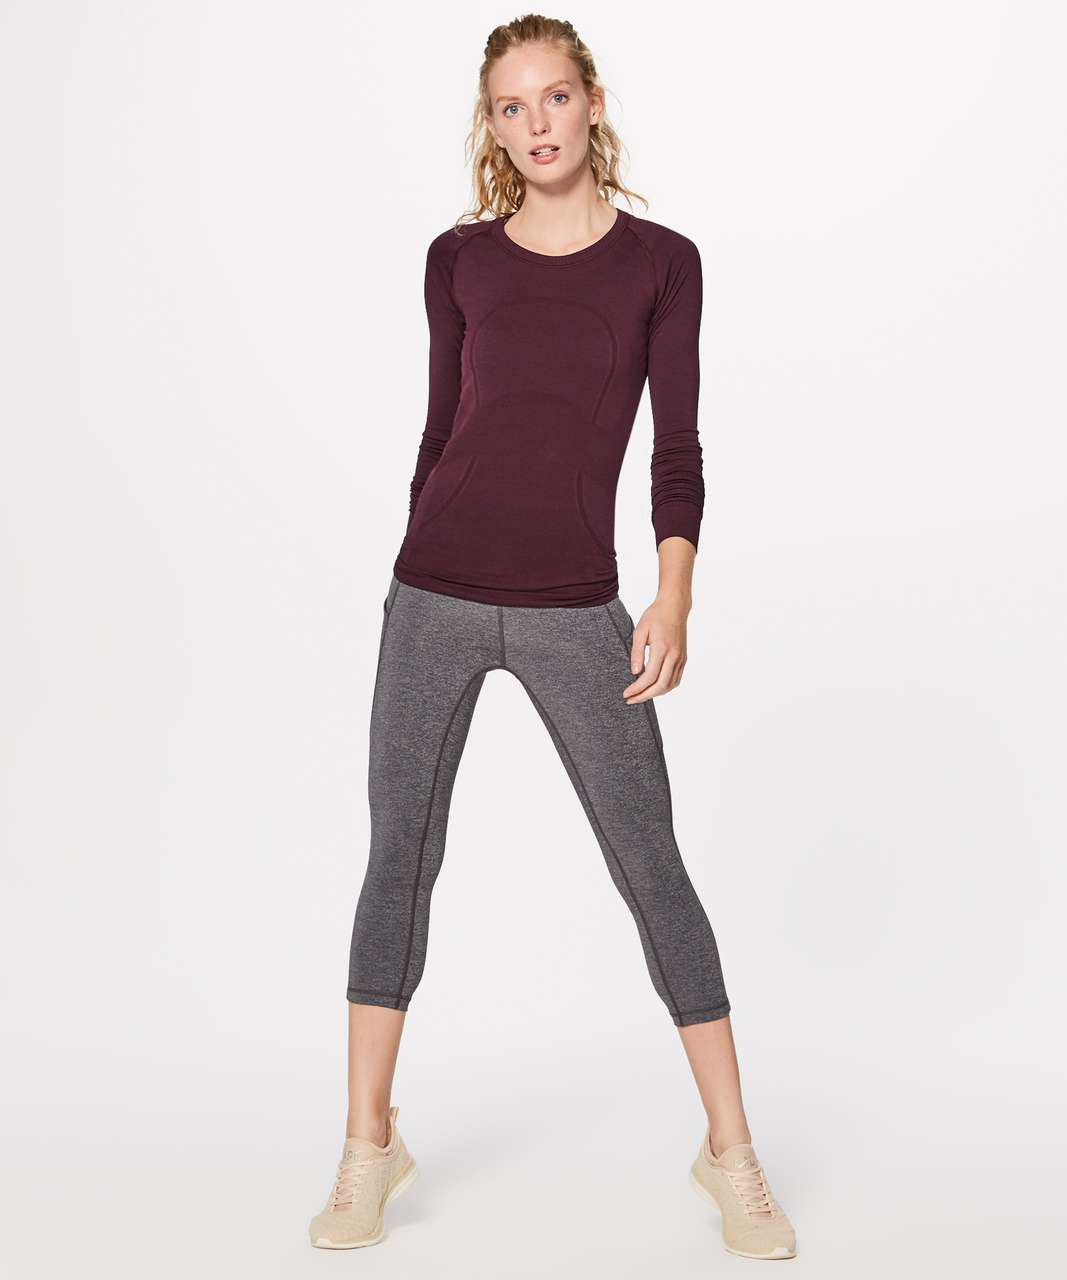 Lululemon Swiftly Tech Long Sleeve Crew - Garnet / Garnet